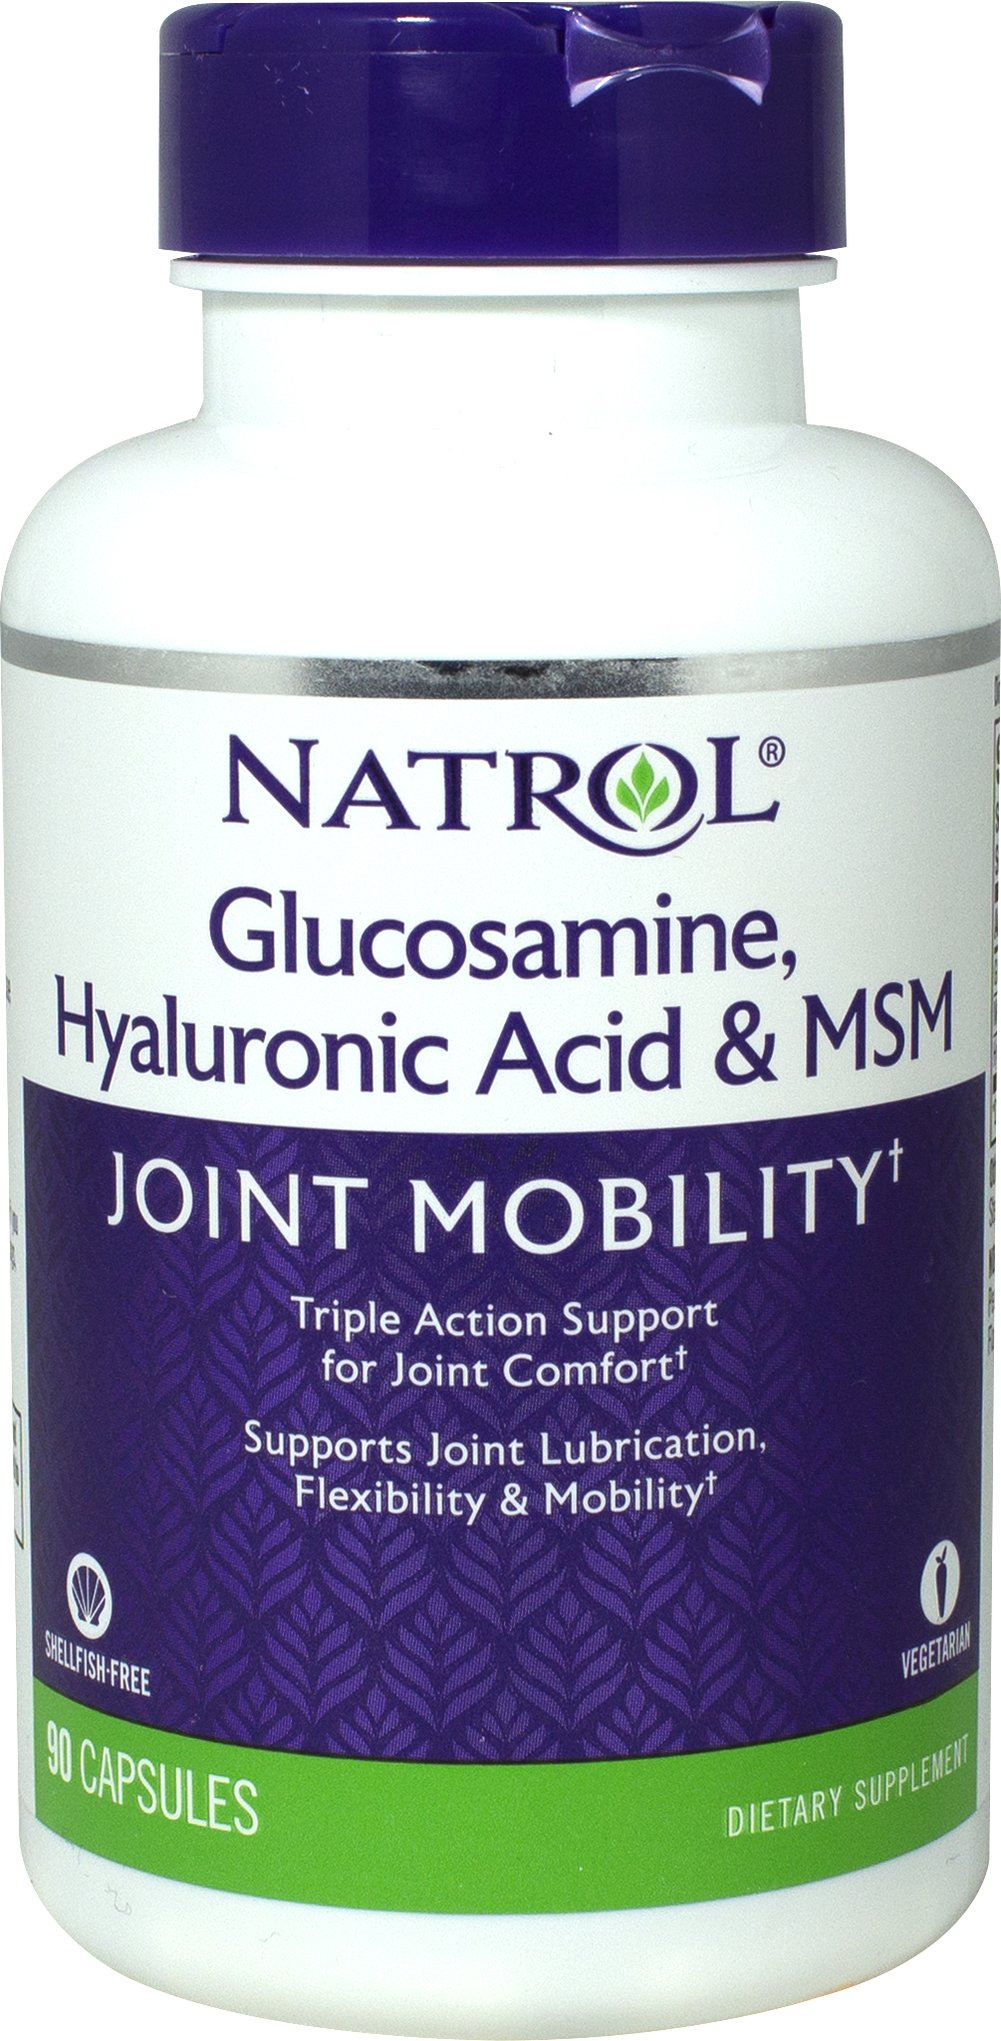 Hyaluronic Acid, MSM & Glucosamine Shellfish Free <strong>From the Manufacturer's Label:</strong><br /><br />• Potent Combination to Support Joint Lubrication**<br />• Helps Maintain Joint Flexibility and Comfort**<br />• Promotes Healthy Connective Tissue**<br /><br /><br />Hyaluronic Acid, MSM & Glucosamine supports joint health with three compounds known for their joint-tissue benefits.<br /><br />This powerful vege